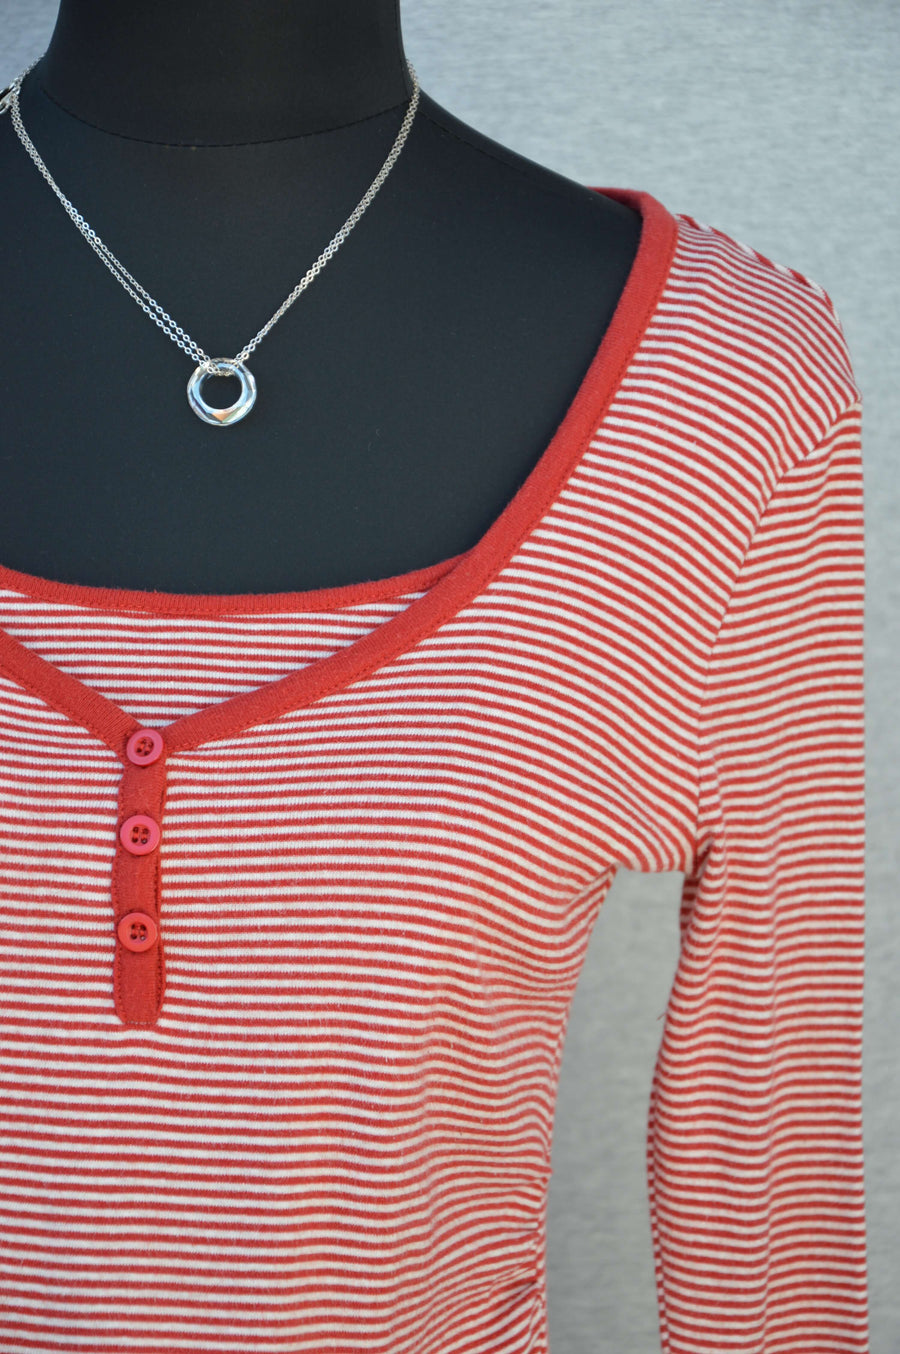 Patch Maternity orange & cream striped breastfeeding tee, size XS (NZ 6/8)